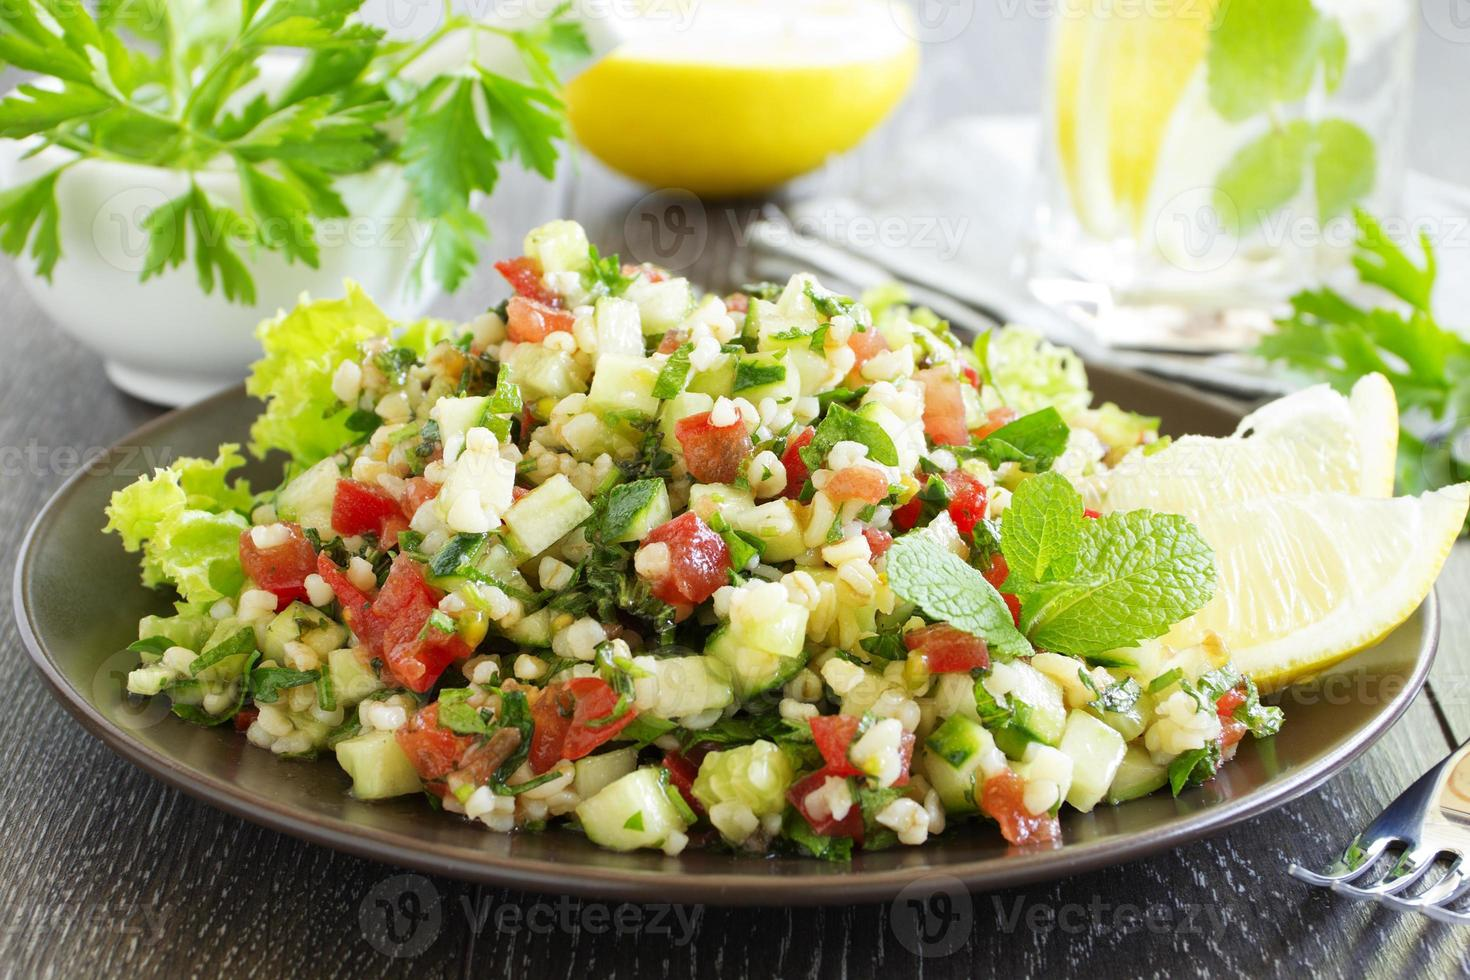 Tabbouleh salad with bulgur and parsley. photo